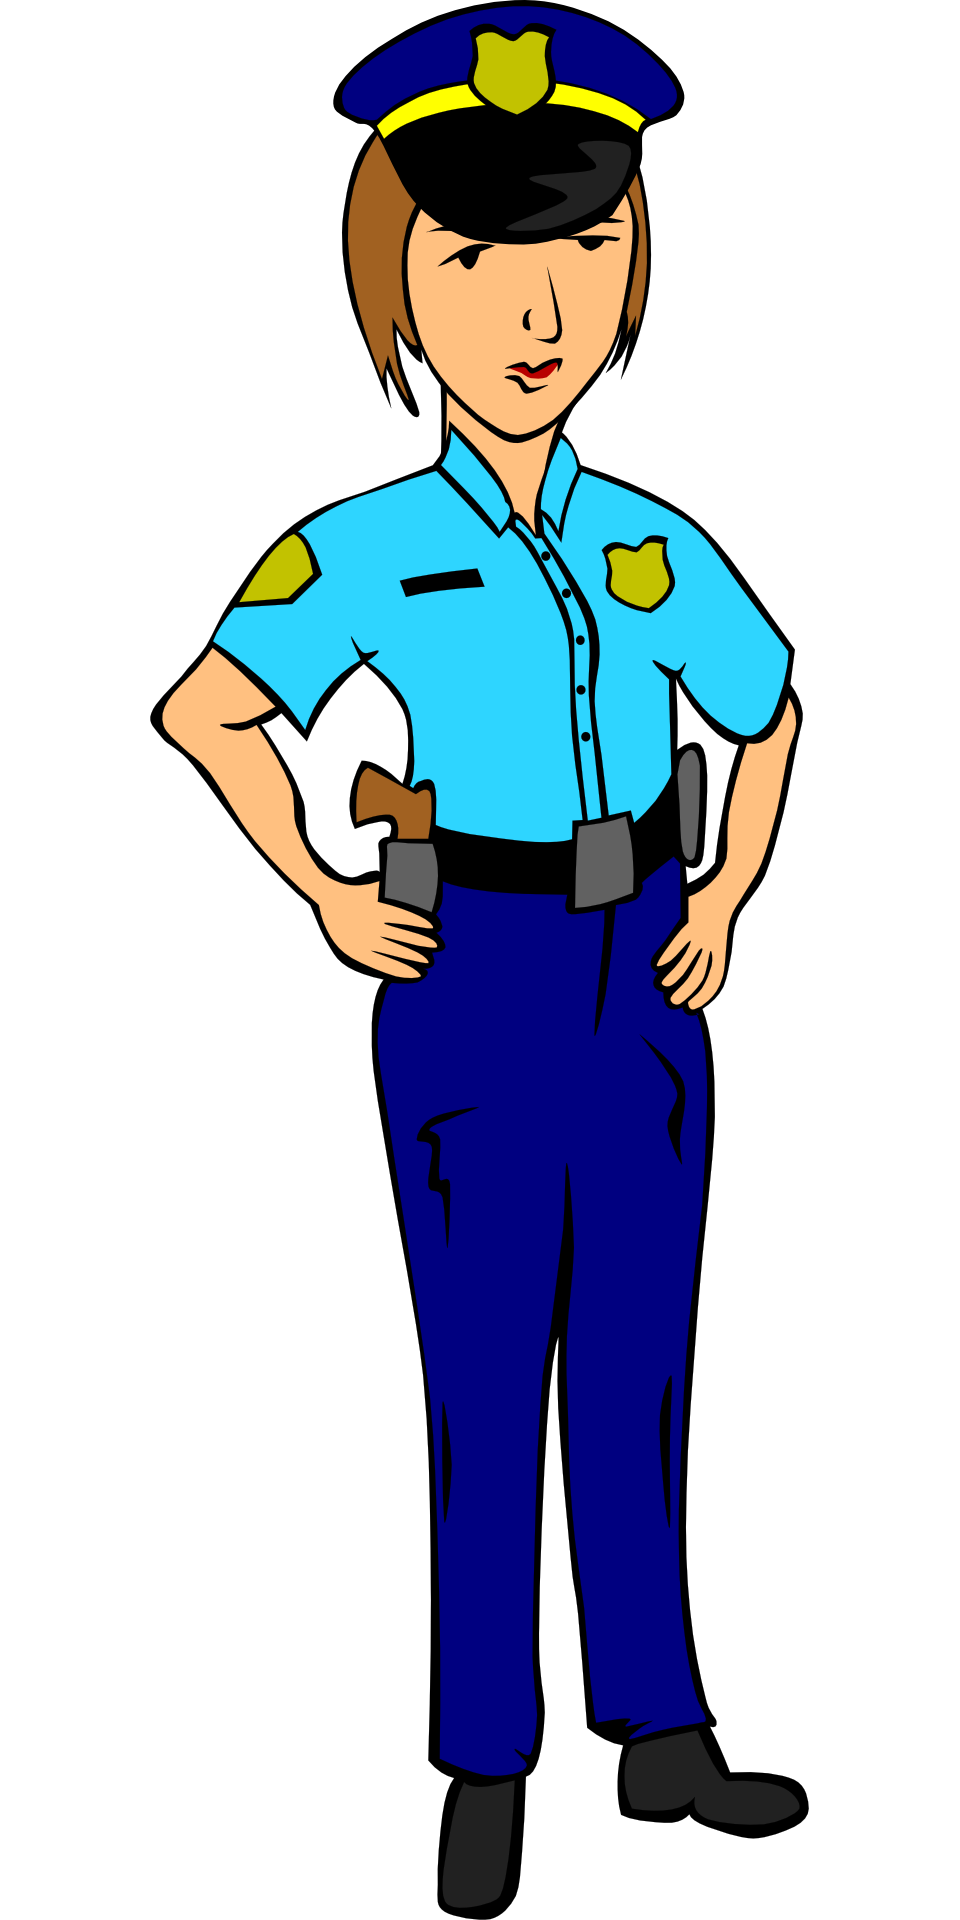 960x1920 Police Officer Uniform Woman Drawing Free Image